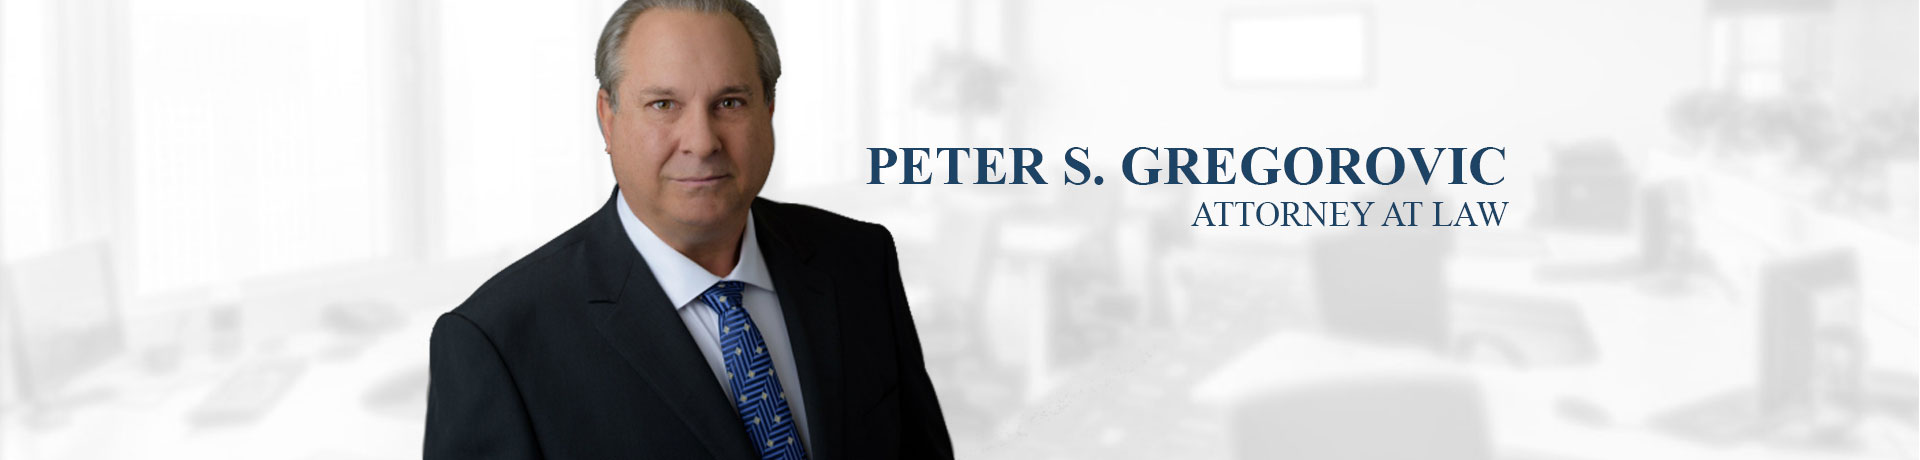 peter-gregorovic-attorney